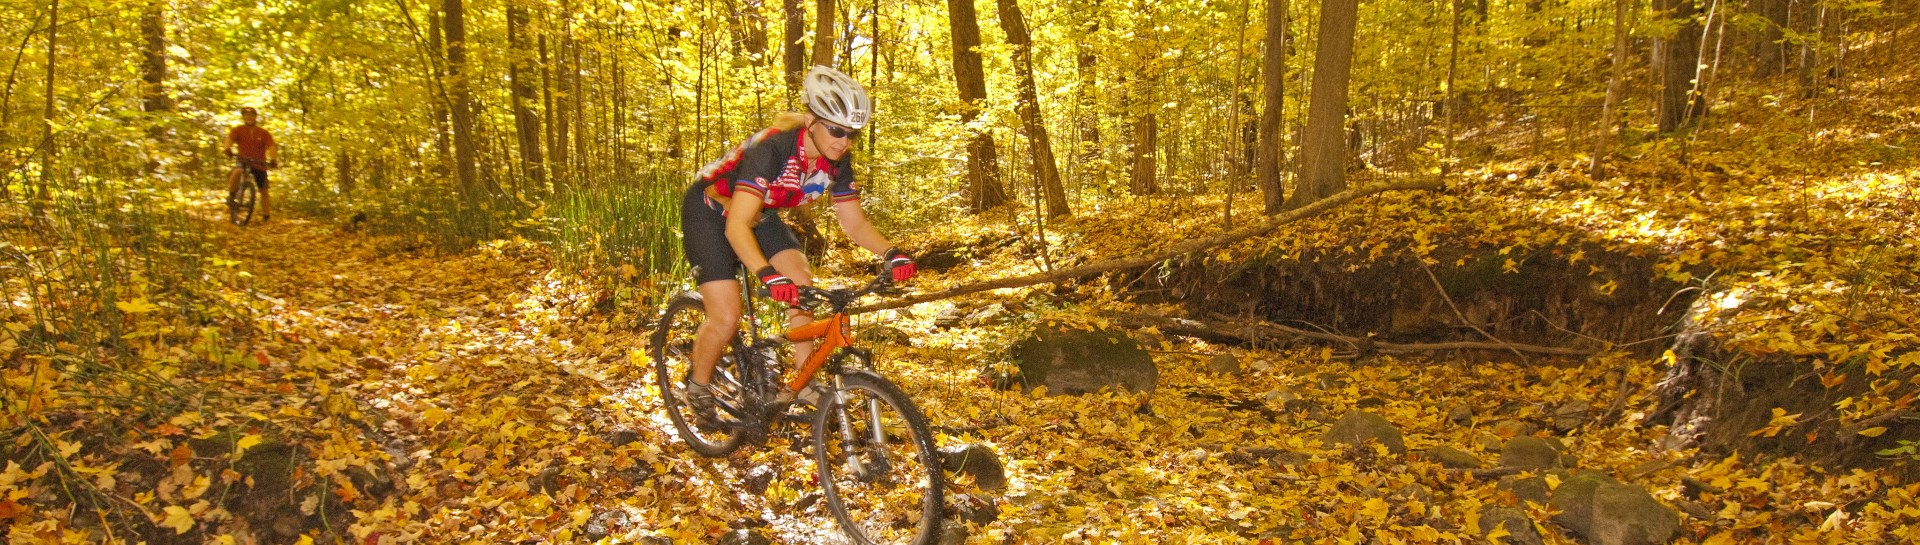 Woman in racing clothes mountain biking through Ganaraska Forest in fall